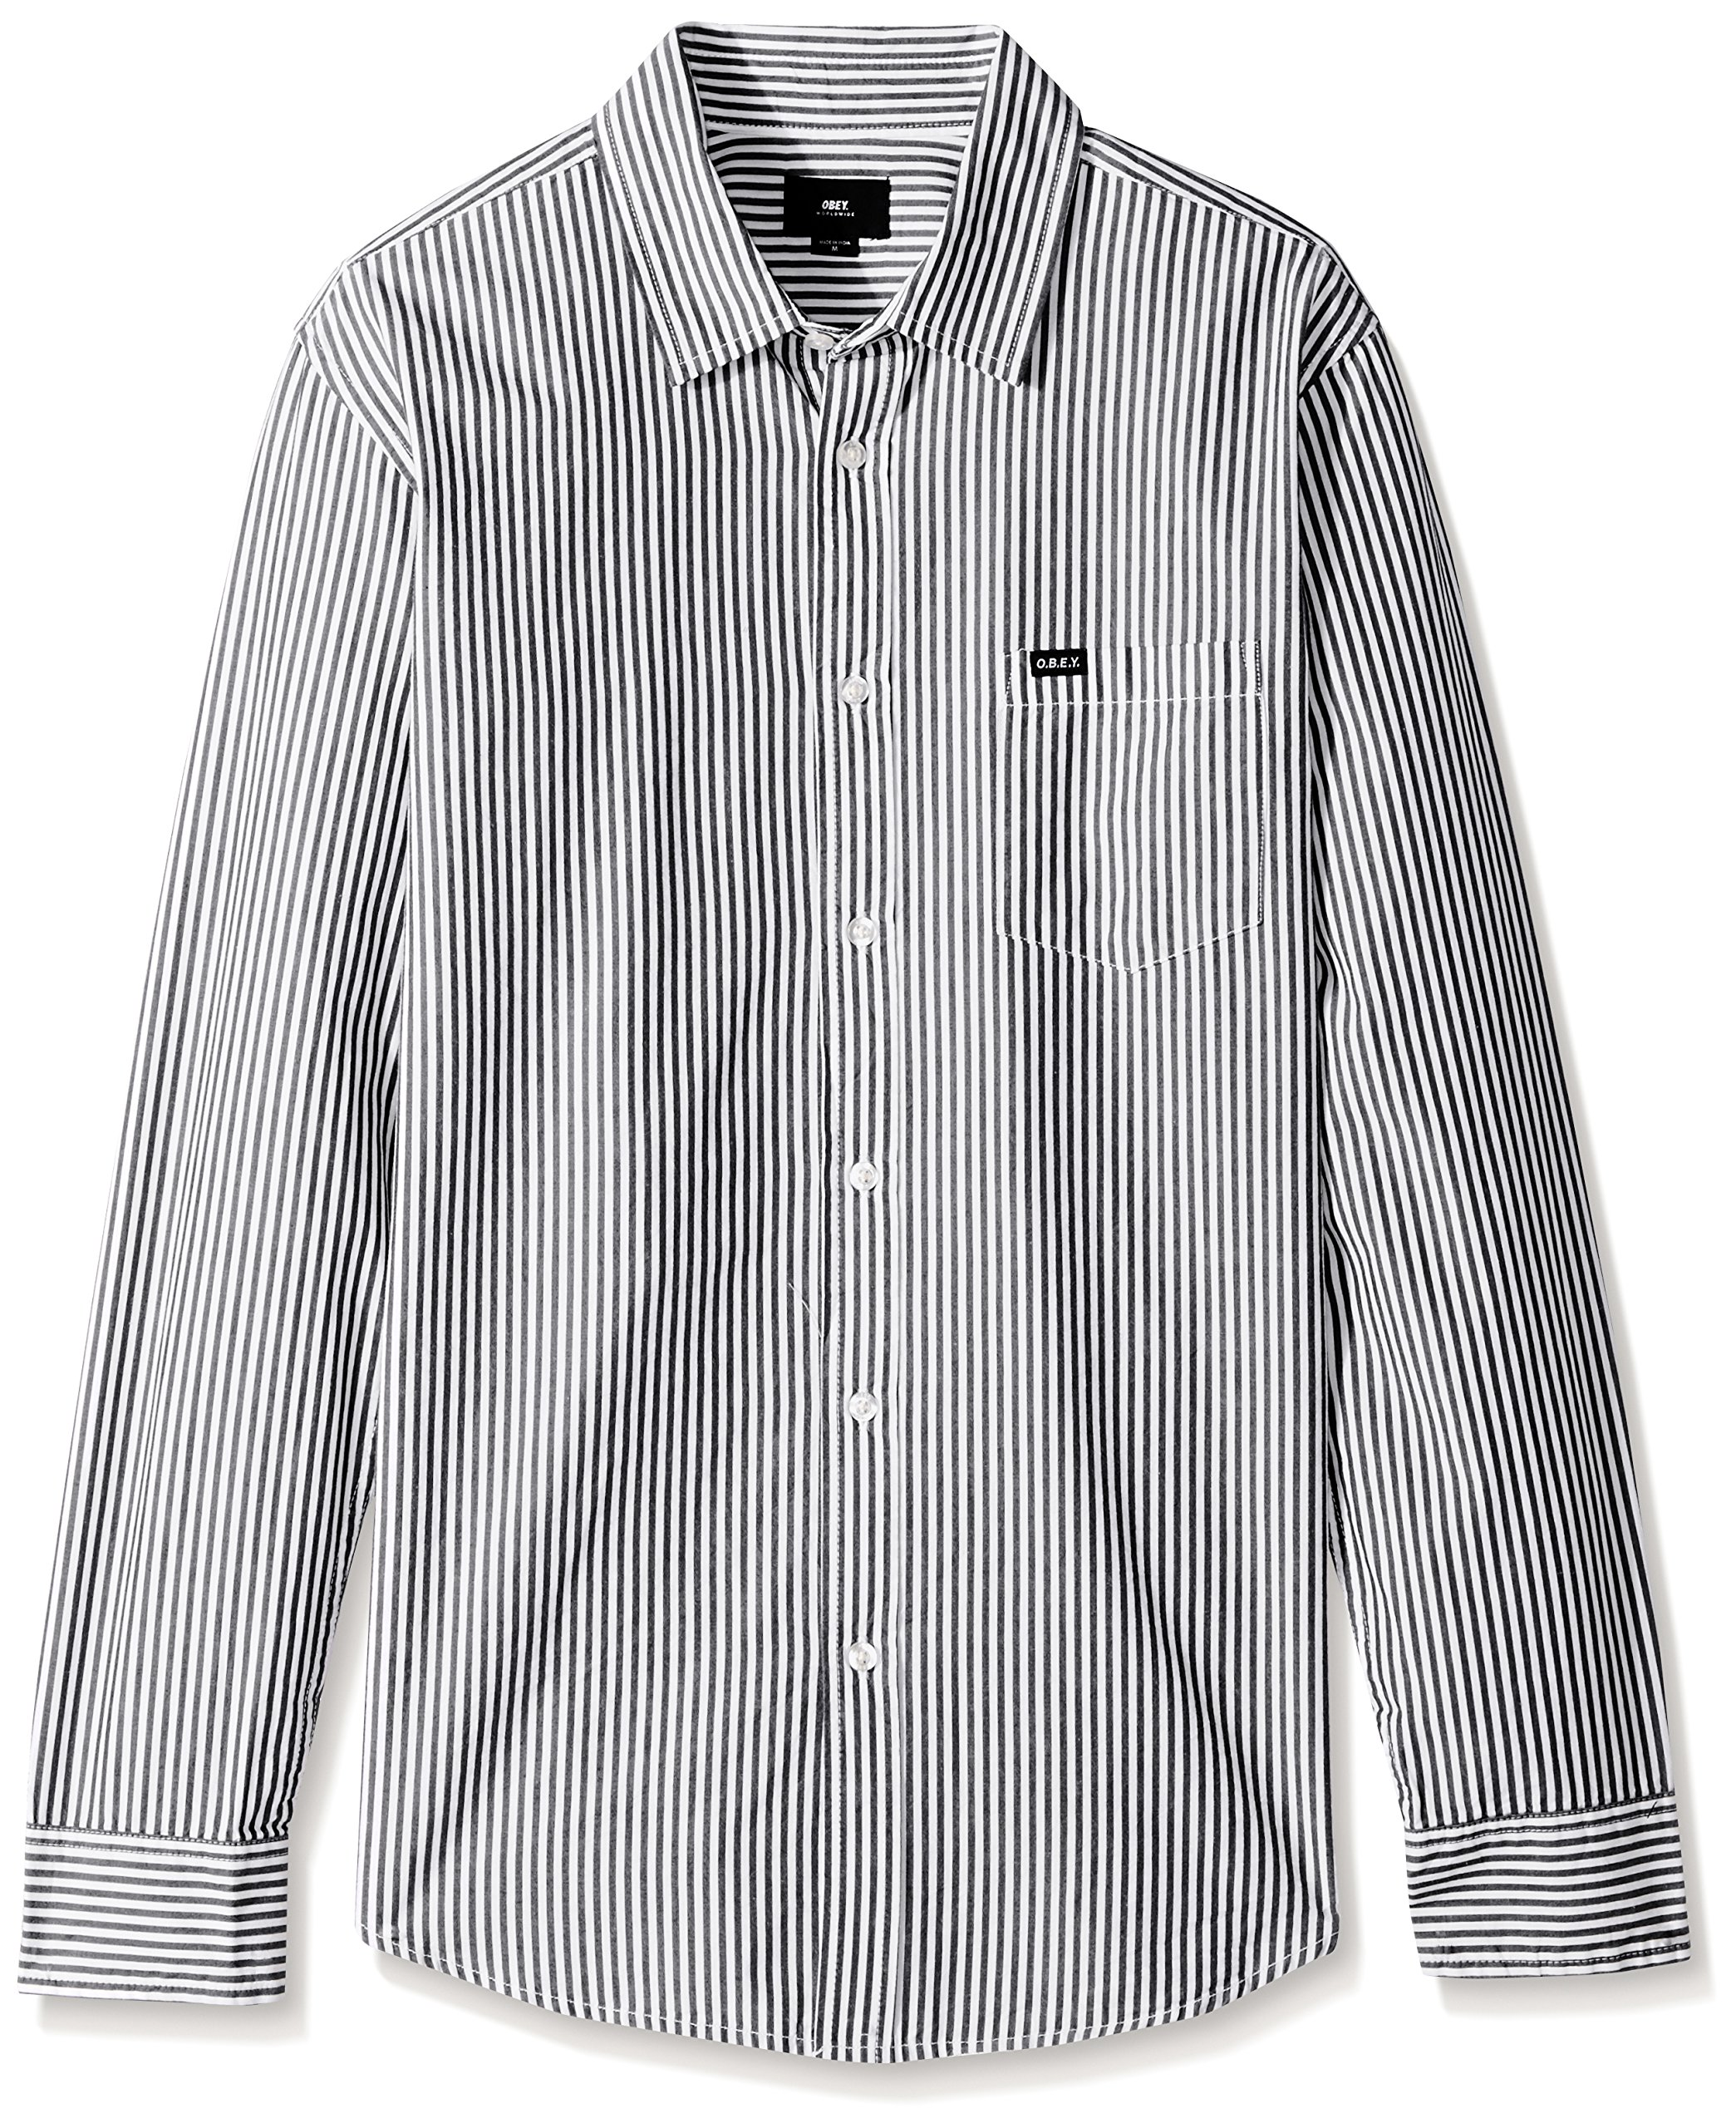 Van Heusen Slim Fit Dress Shirts Amazon